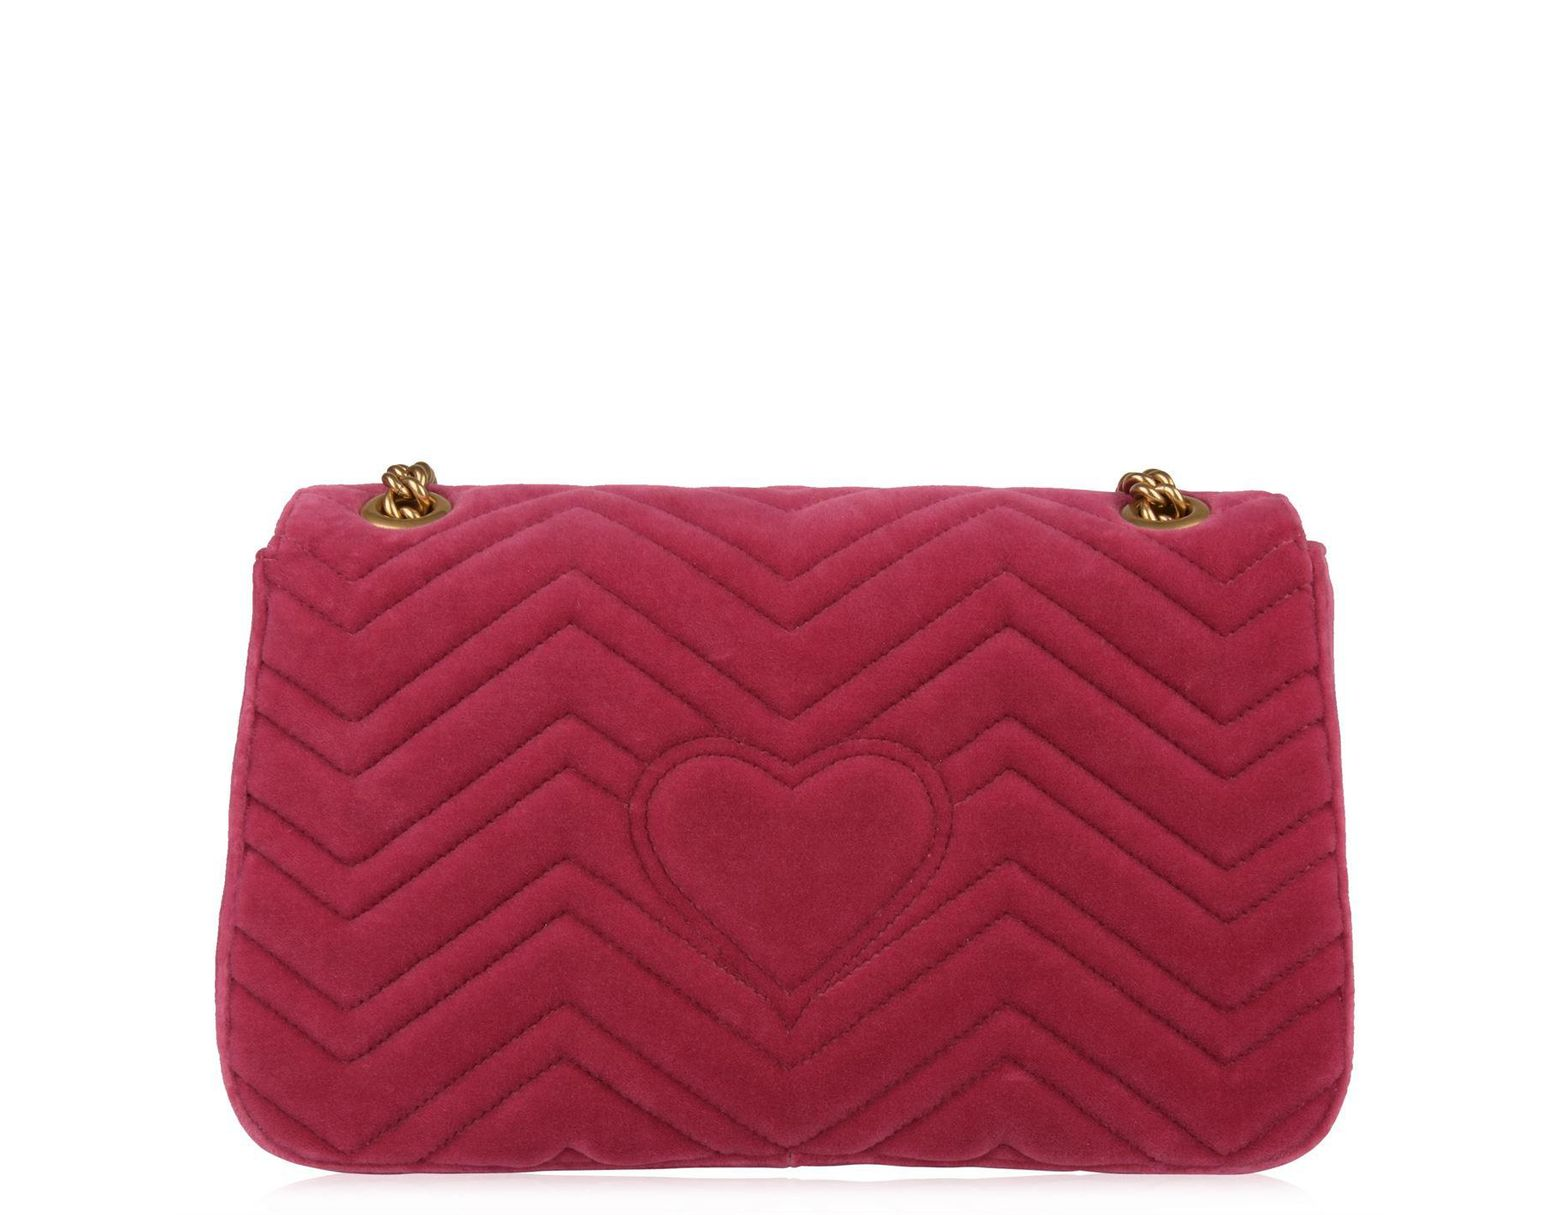 ea17b14fe25 Gucci Blind For Love Marmont Shoulder Bag in Pink - Lyst